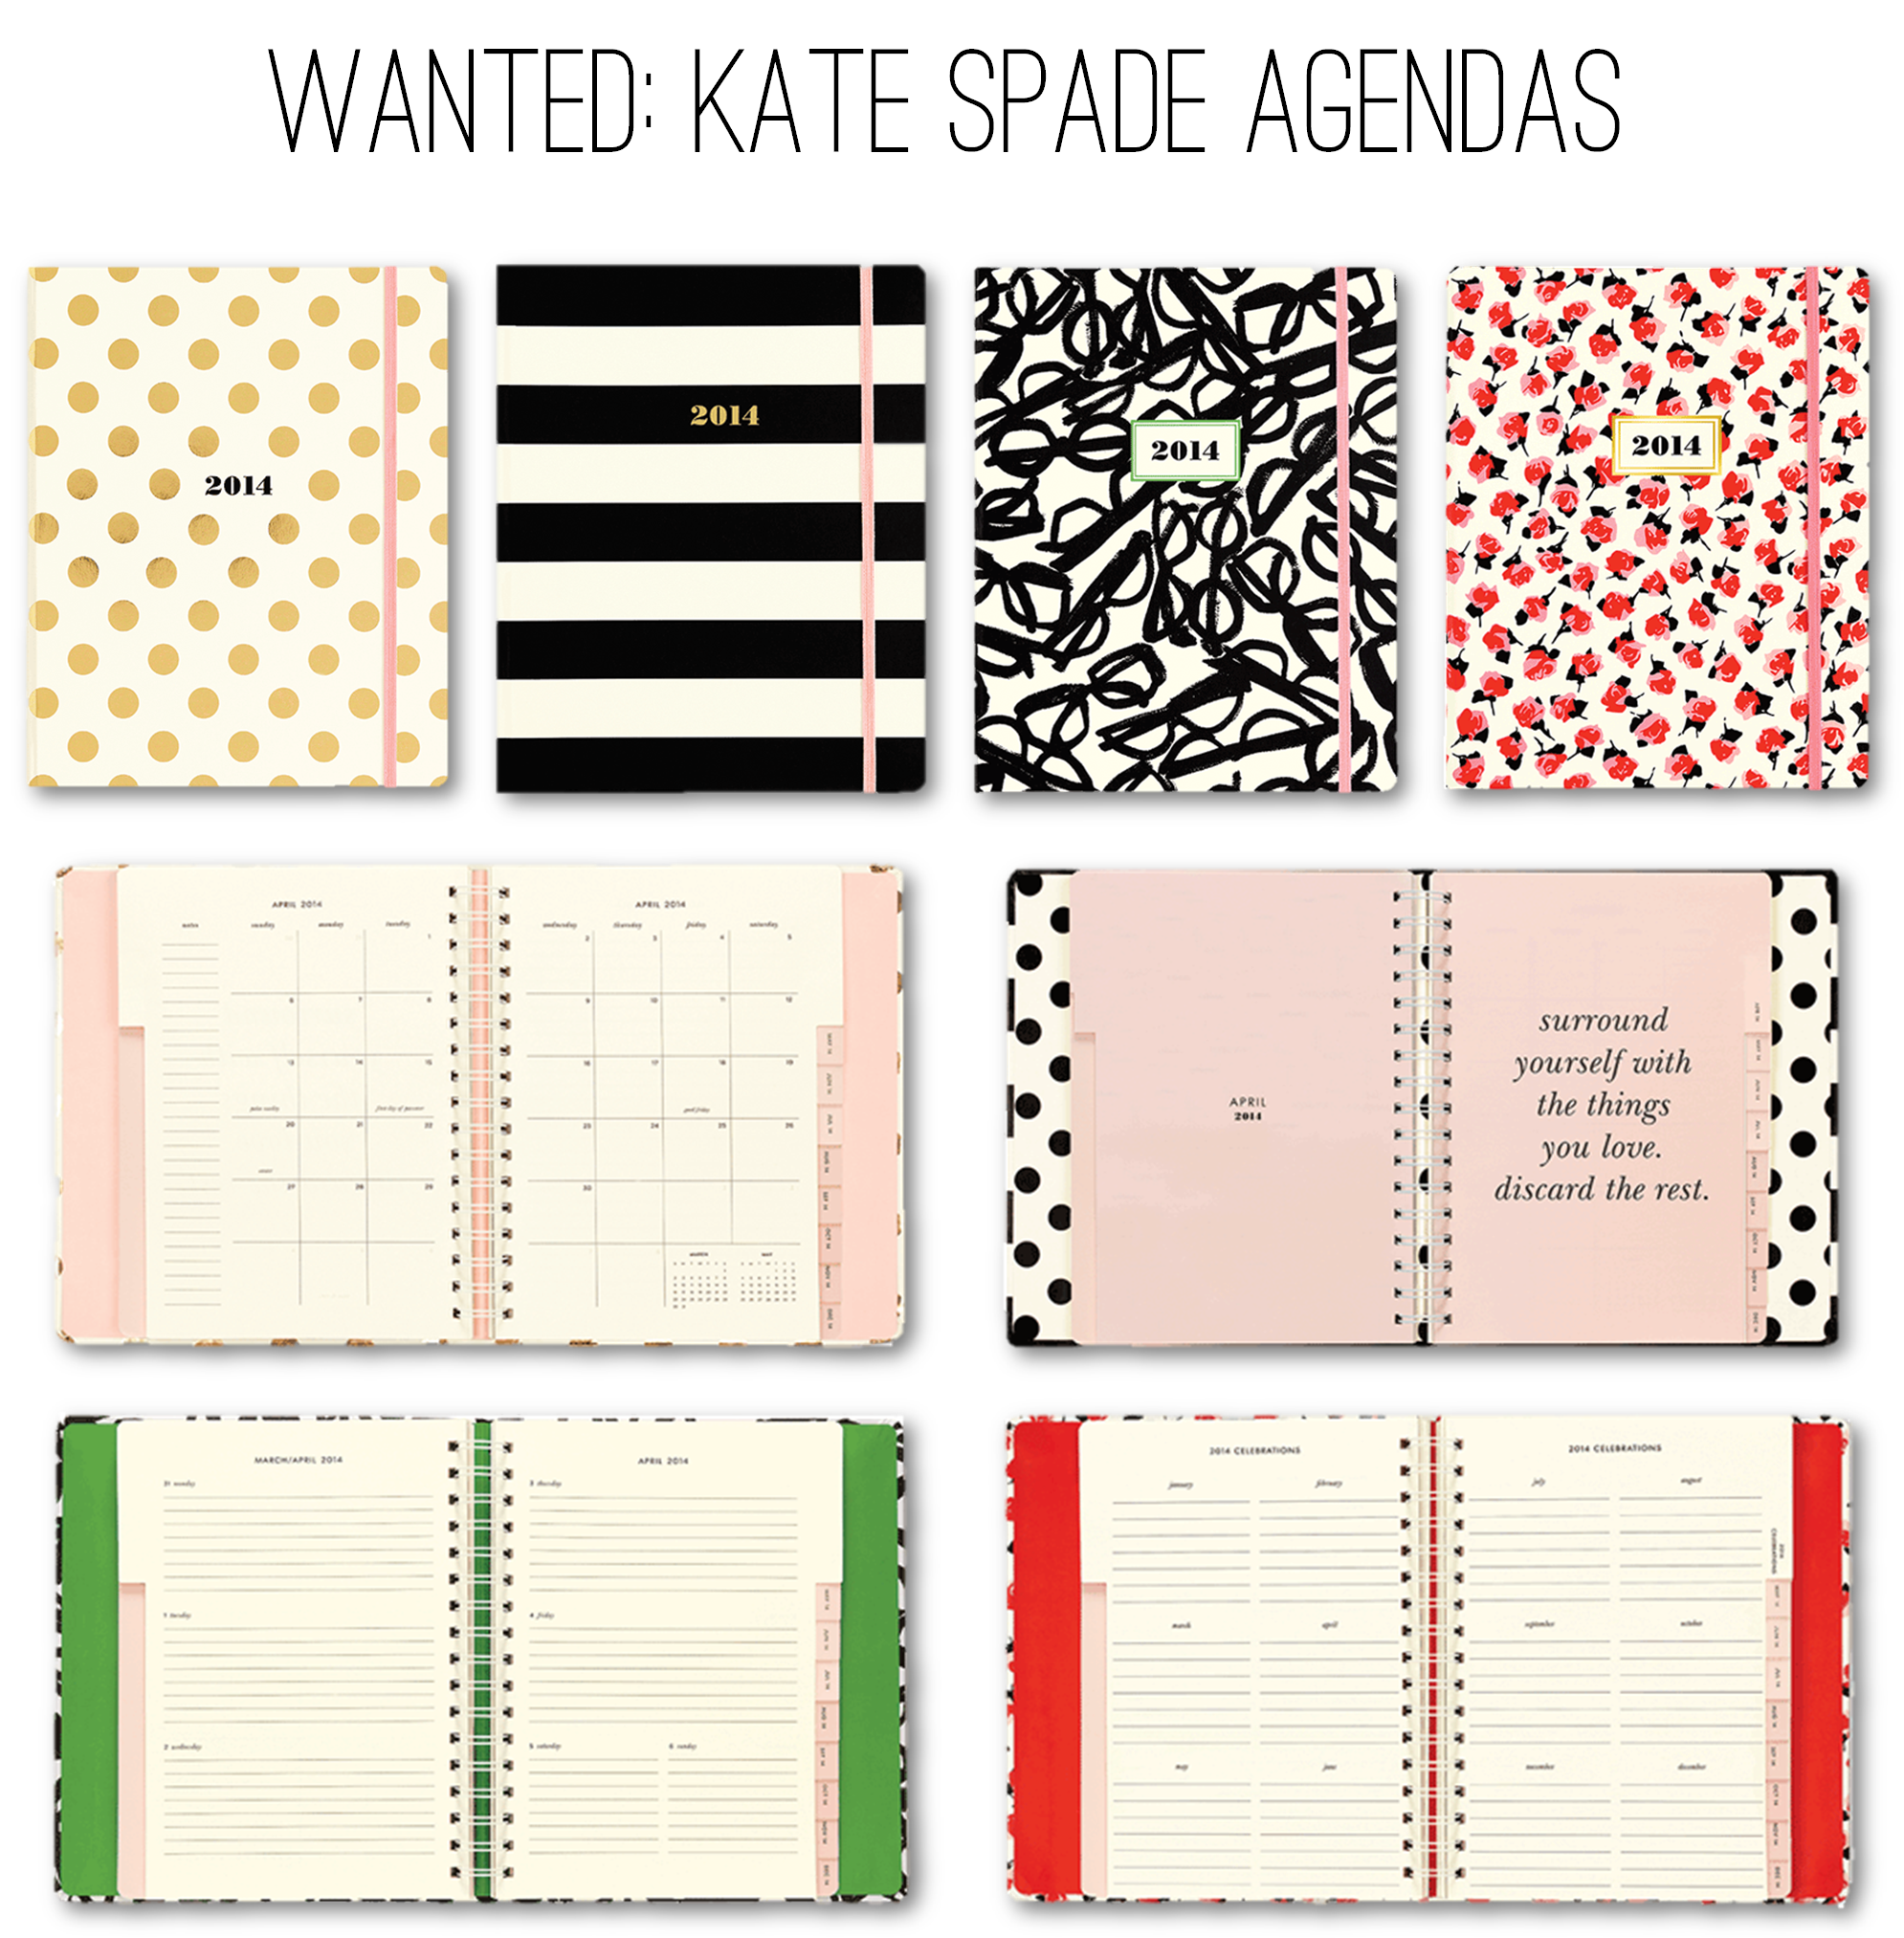 wanted_katespadeagendas